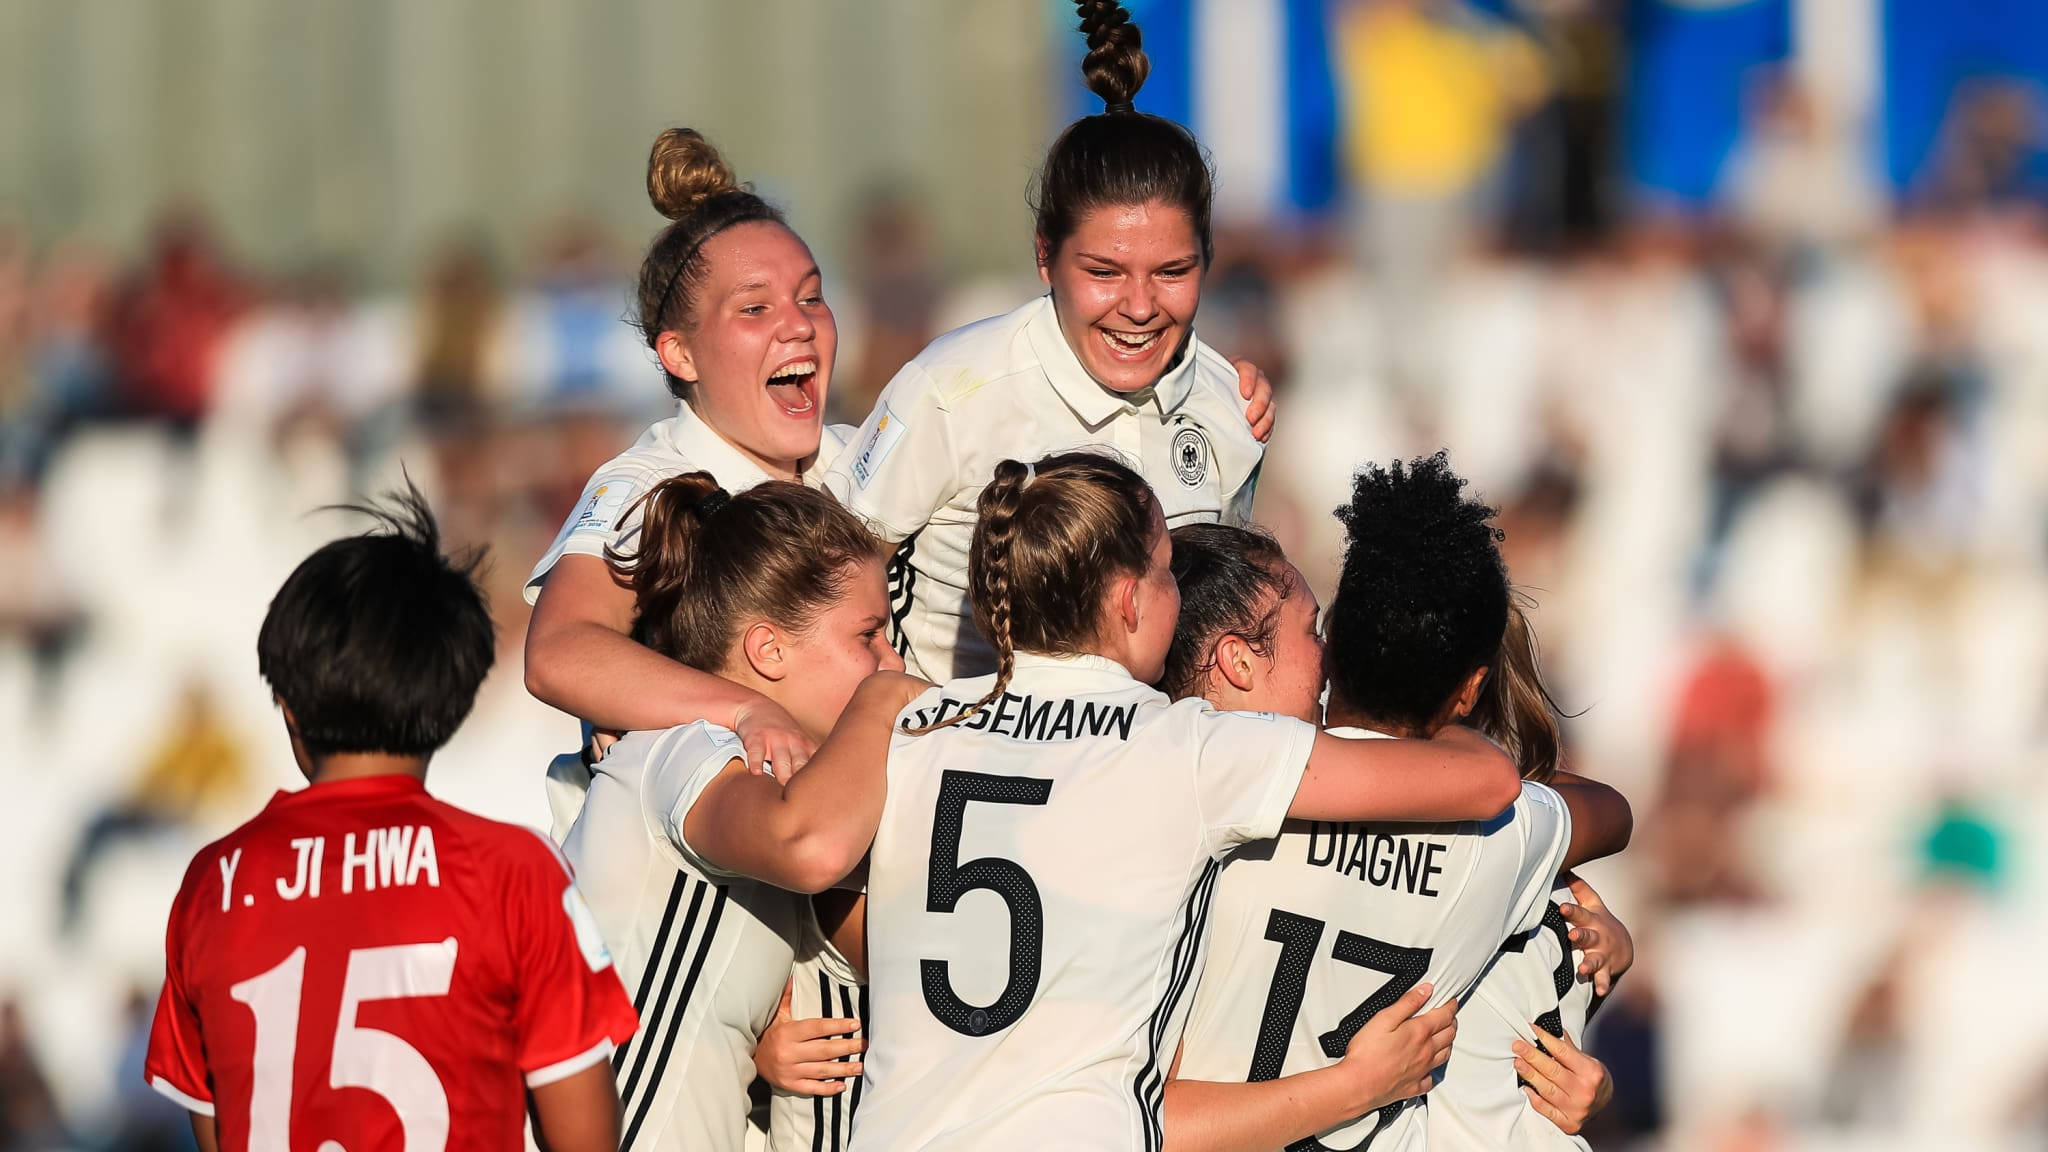 Germany beat defending champions as group stages continue in FIFA under-17 Women's World Cup